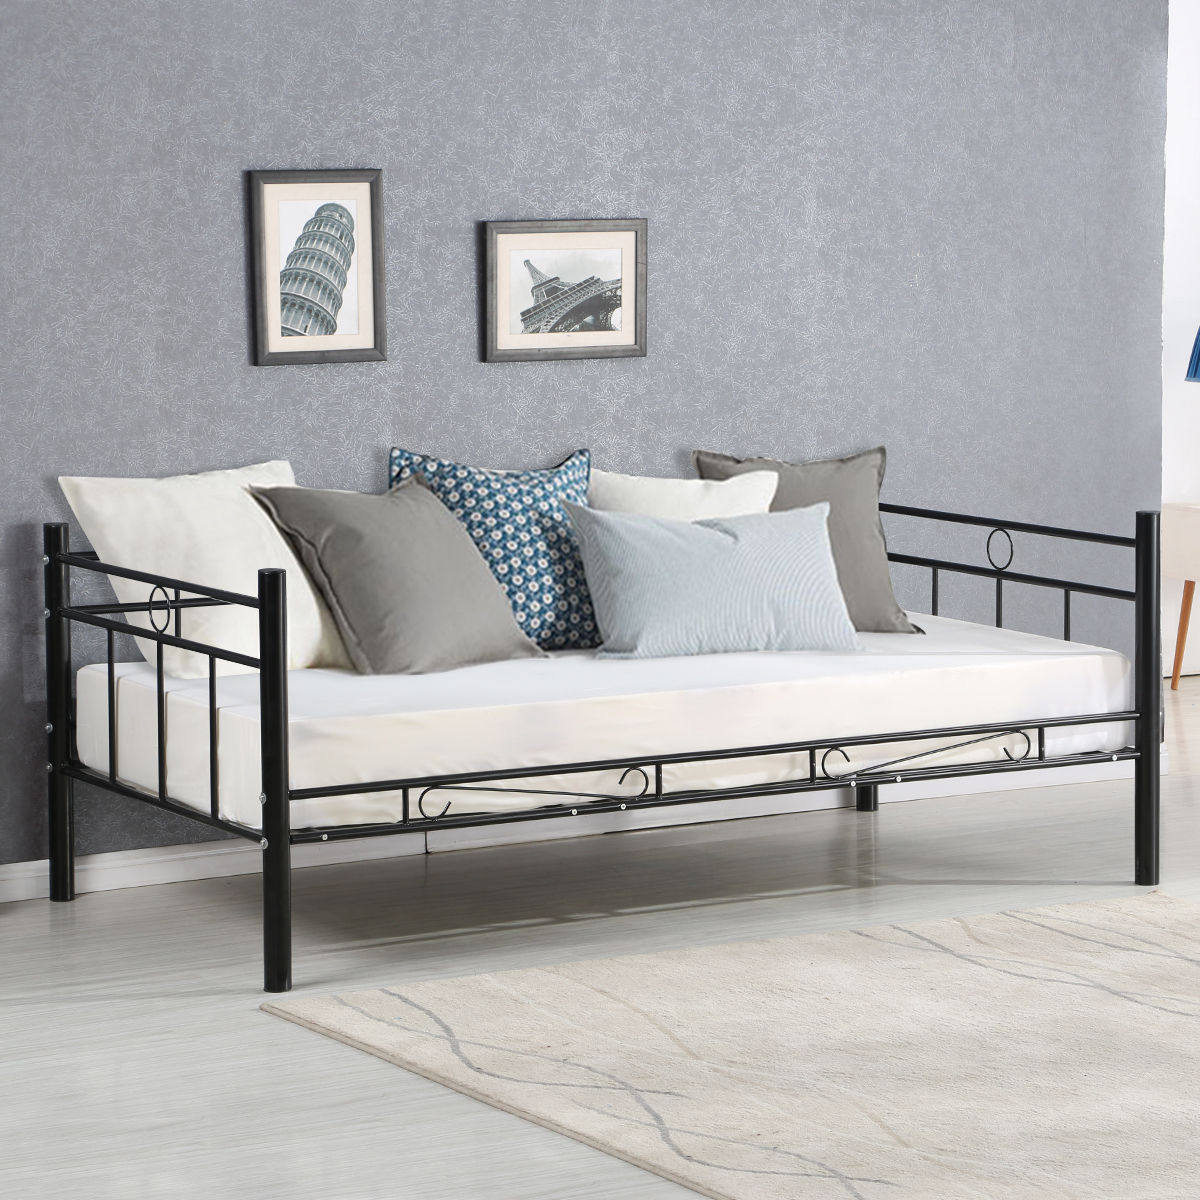 Giantex Twin Size Daybed Sofa Bed Bedroom Modern Metal Steel Bed Frame  Solid Support Guest Dorm Home Furniture HW56068+